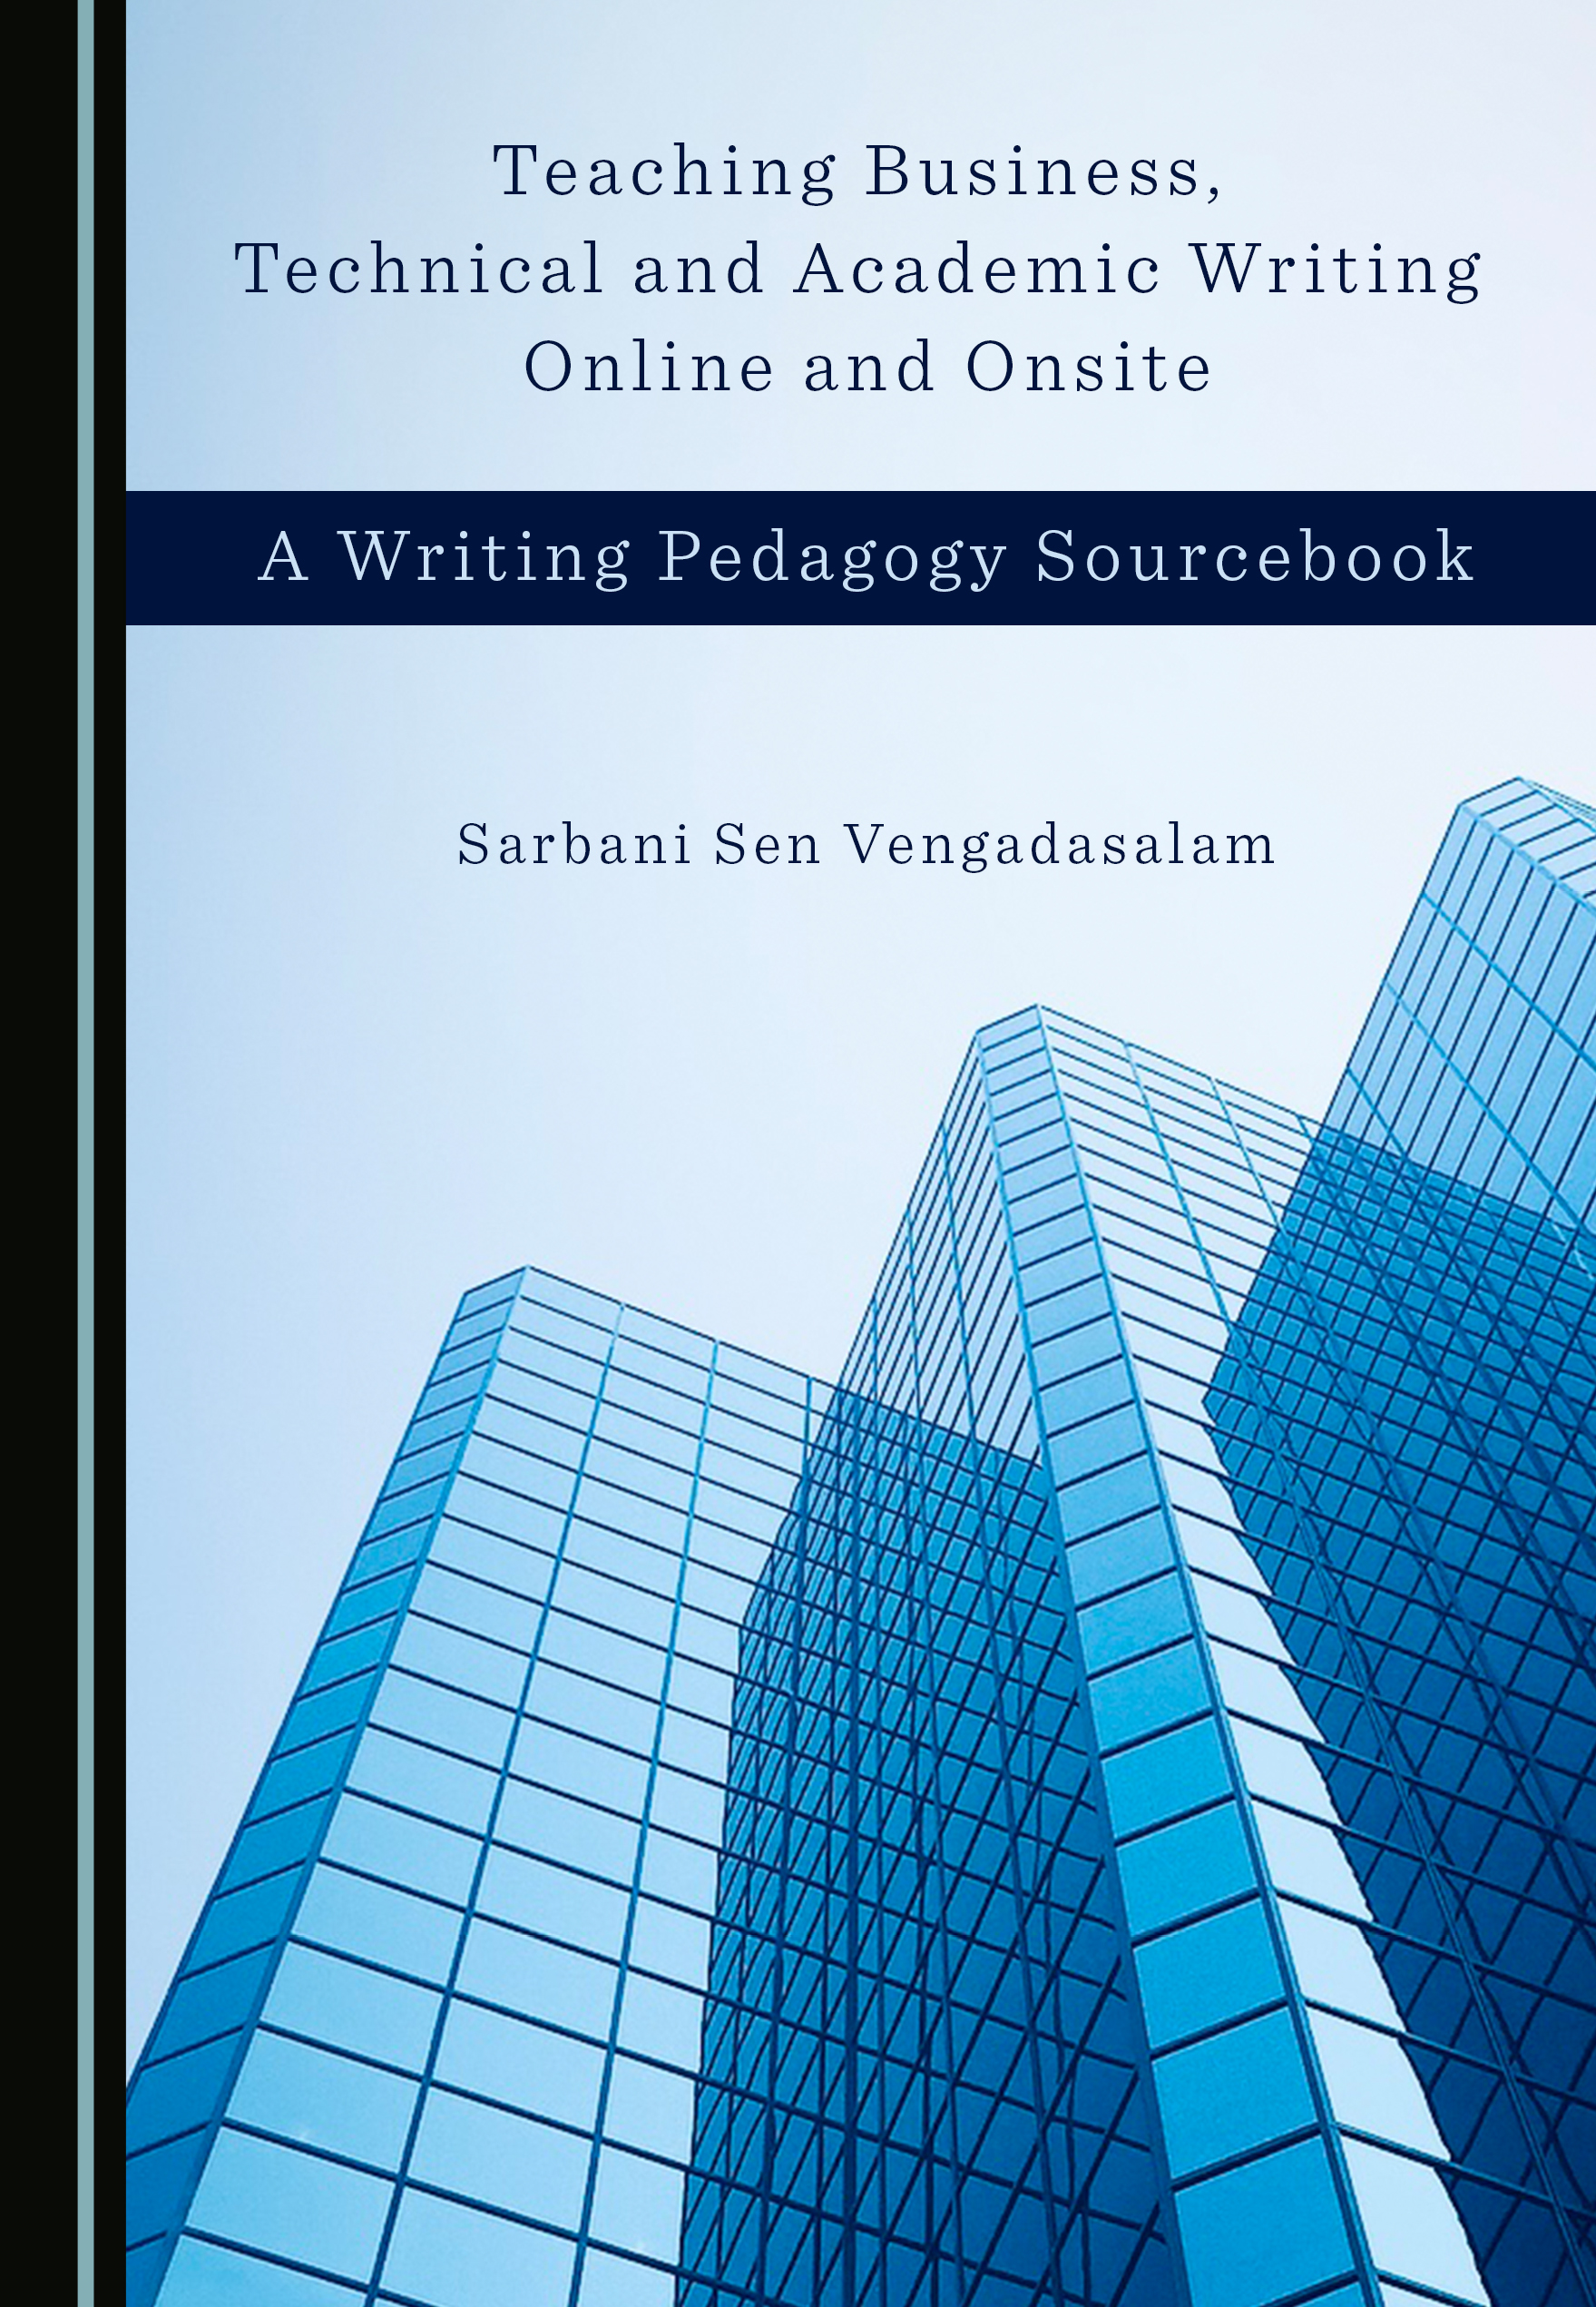 Teaching Business, Technical and Academic Writing Online and Onsite: A Writing Pedagogy Sourcebook